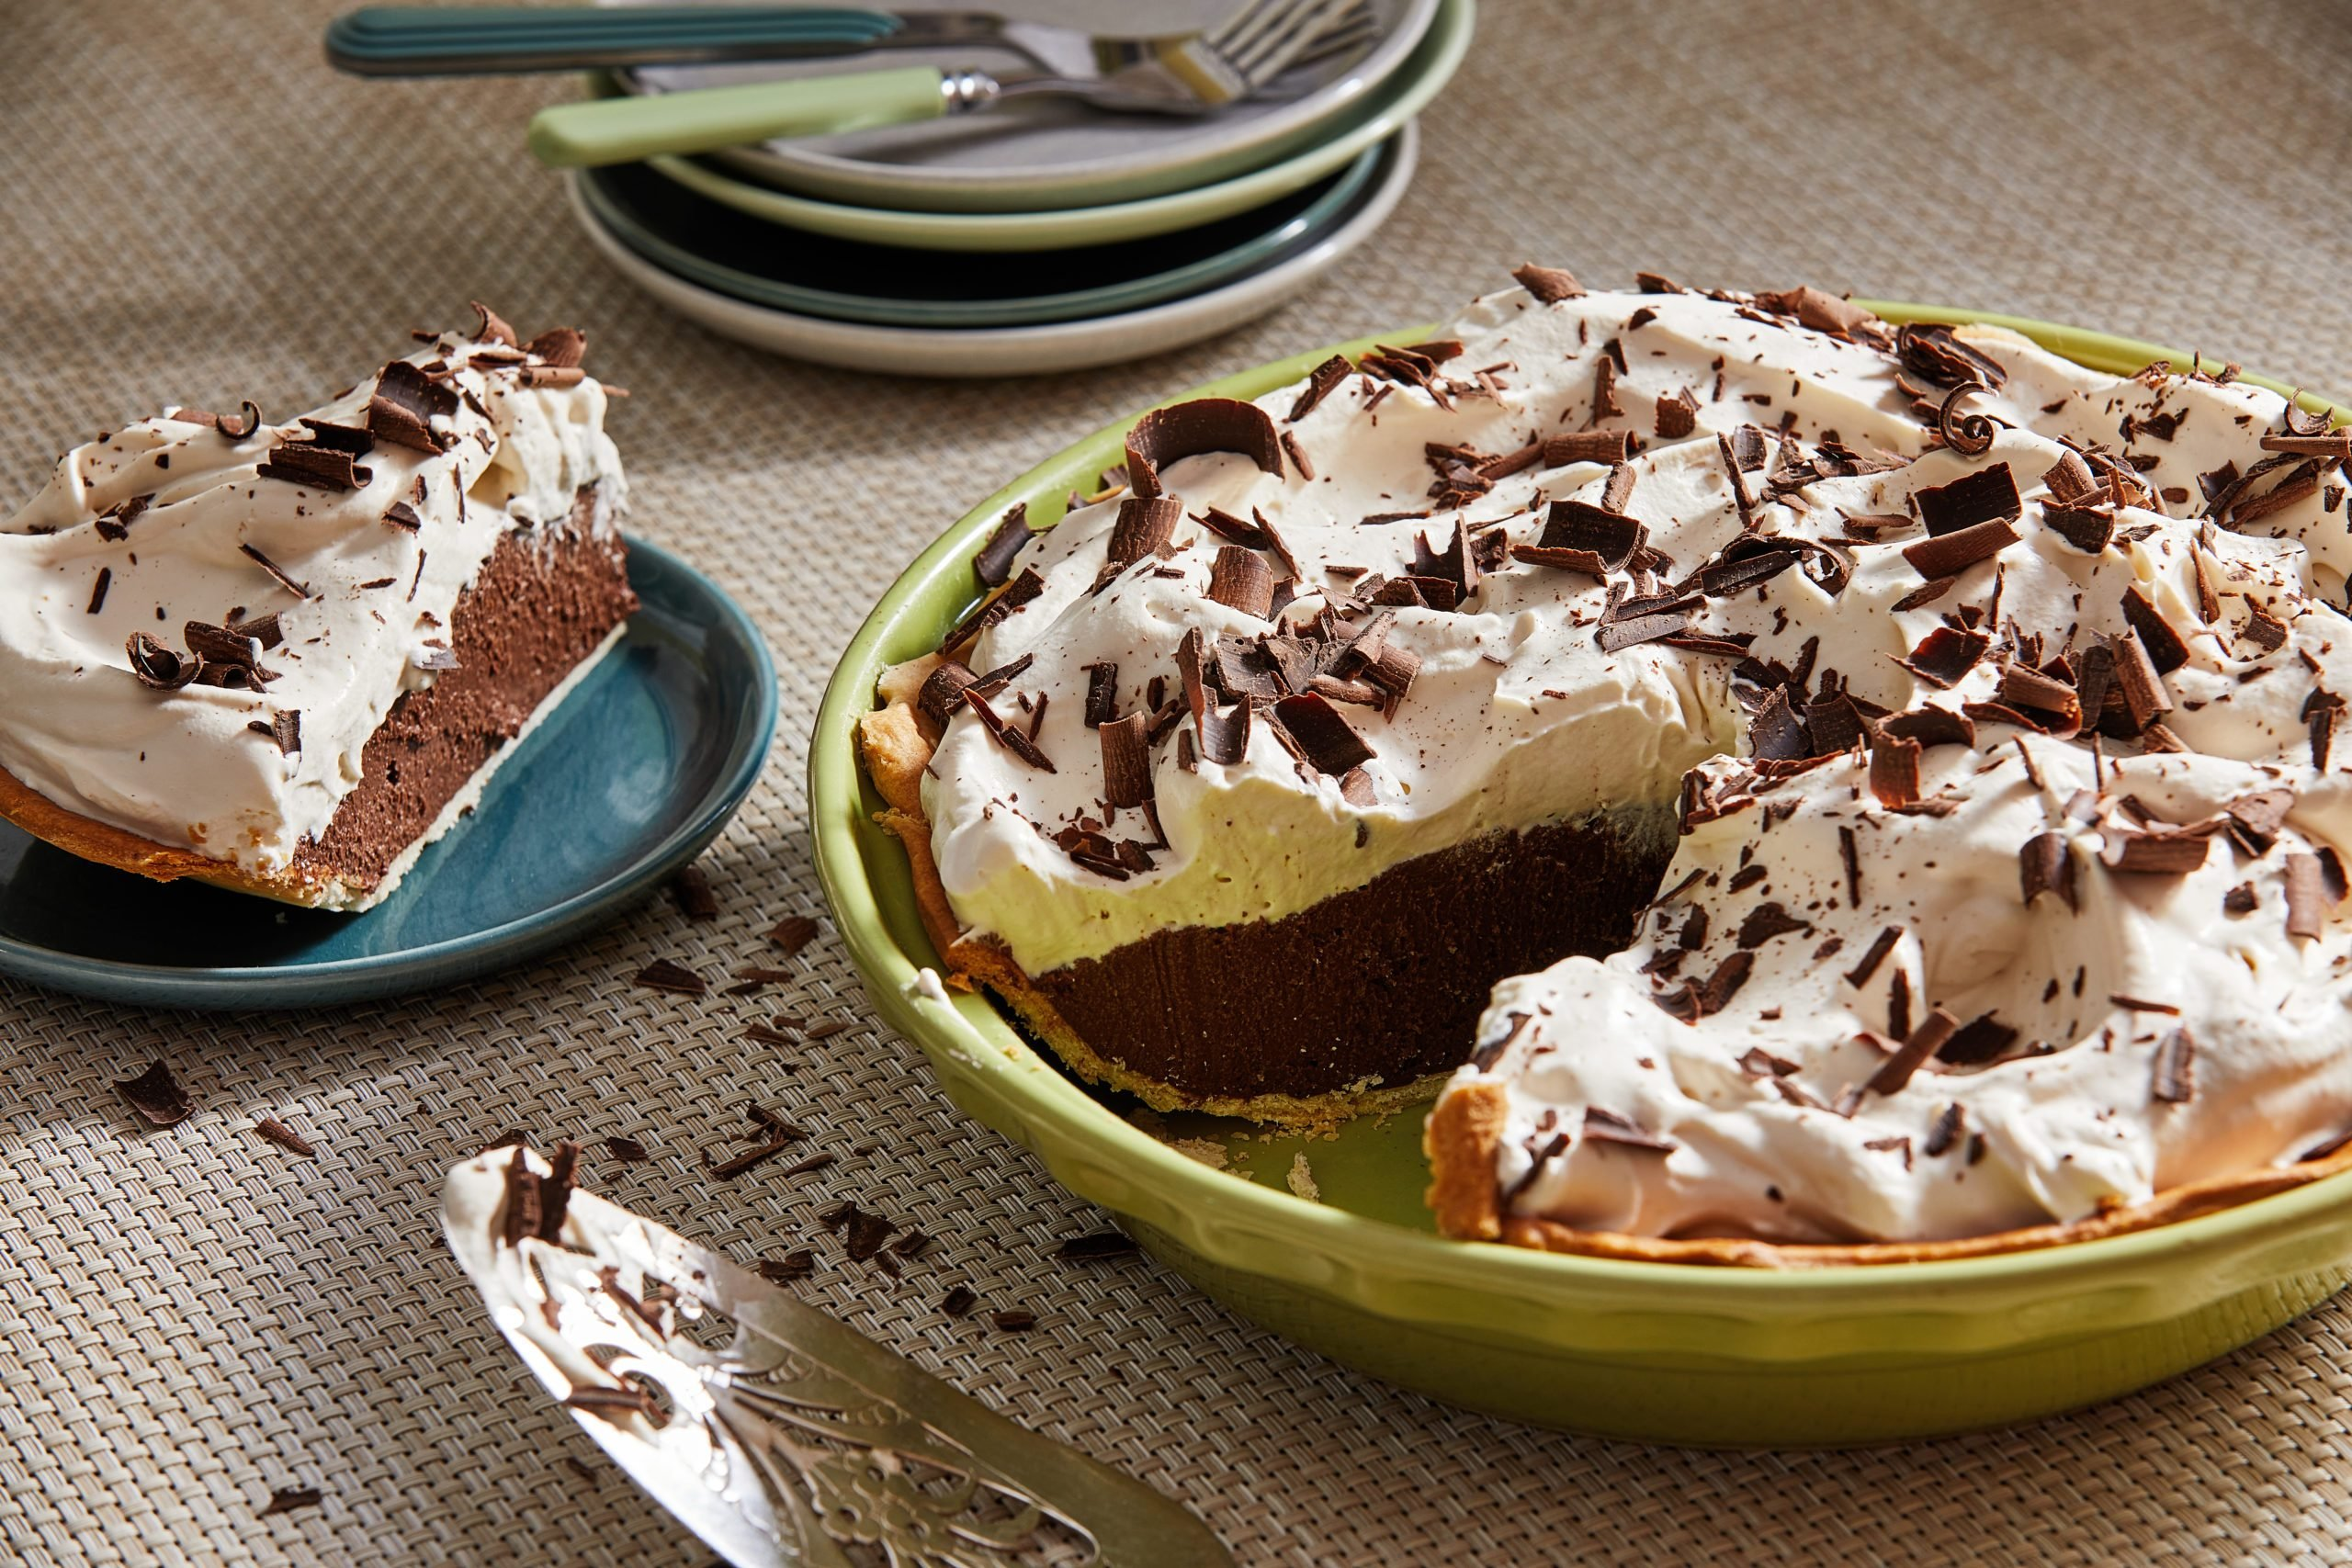 Chocolate Cream Pie for story in Voraciously